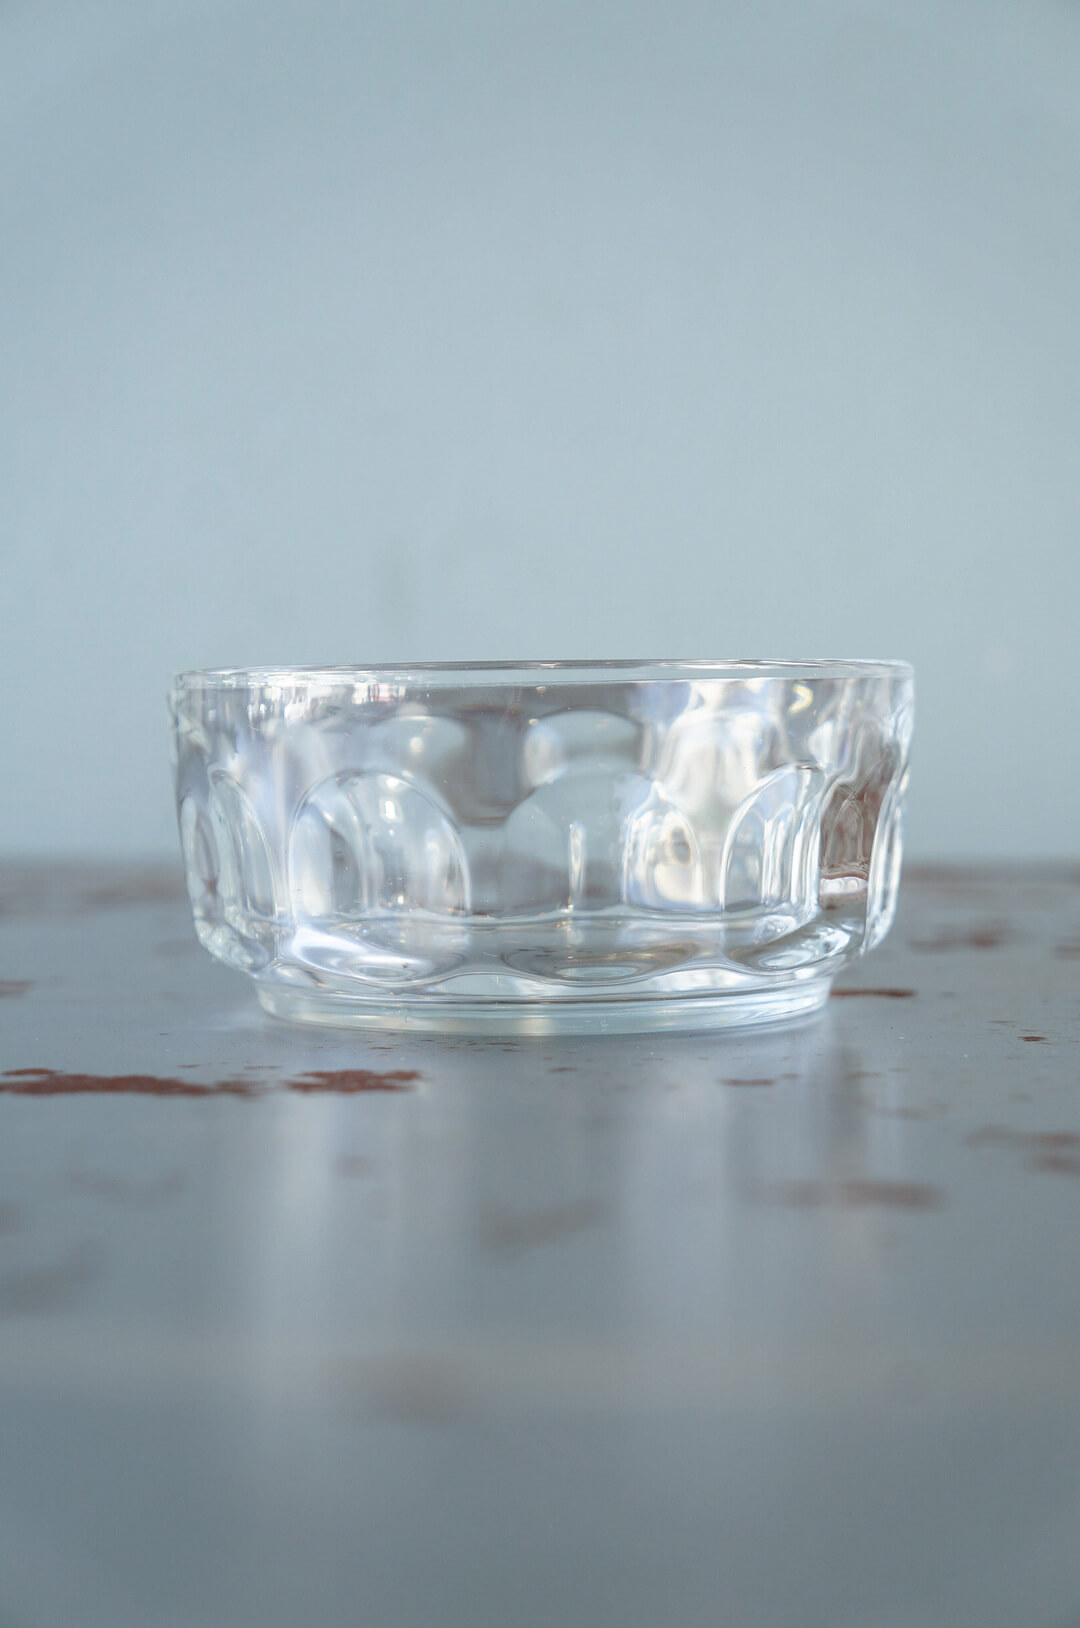 arcoroc Bowl Glass Ware Made In France/アルコロック ボウル ガラス フランス製 食器 レトロ 4